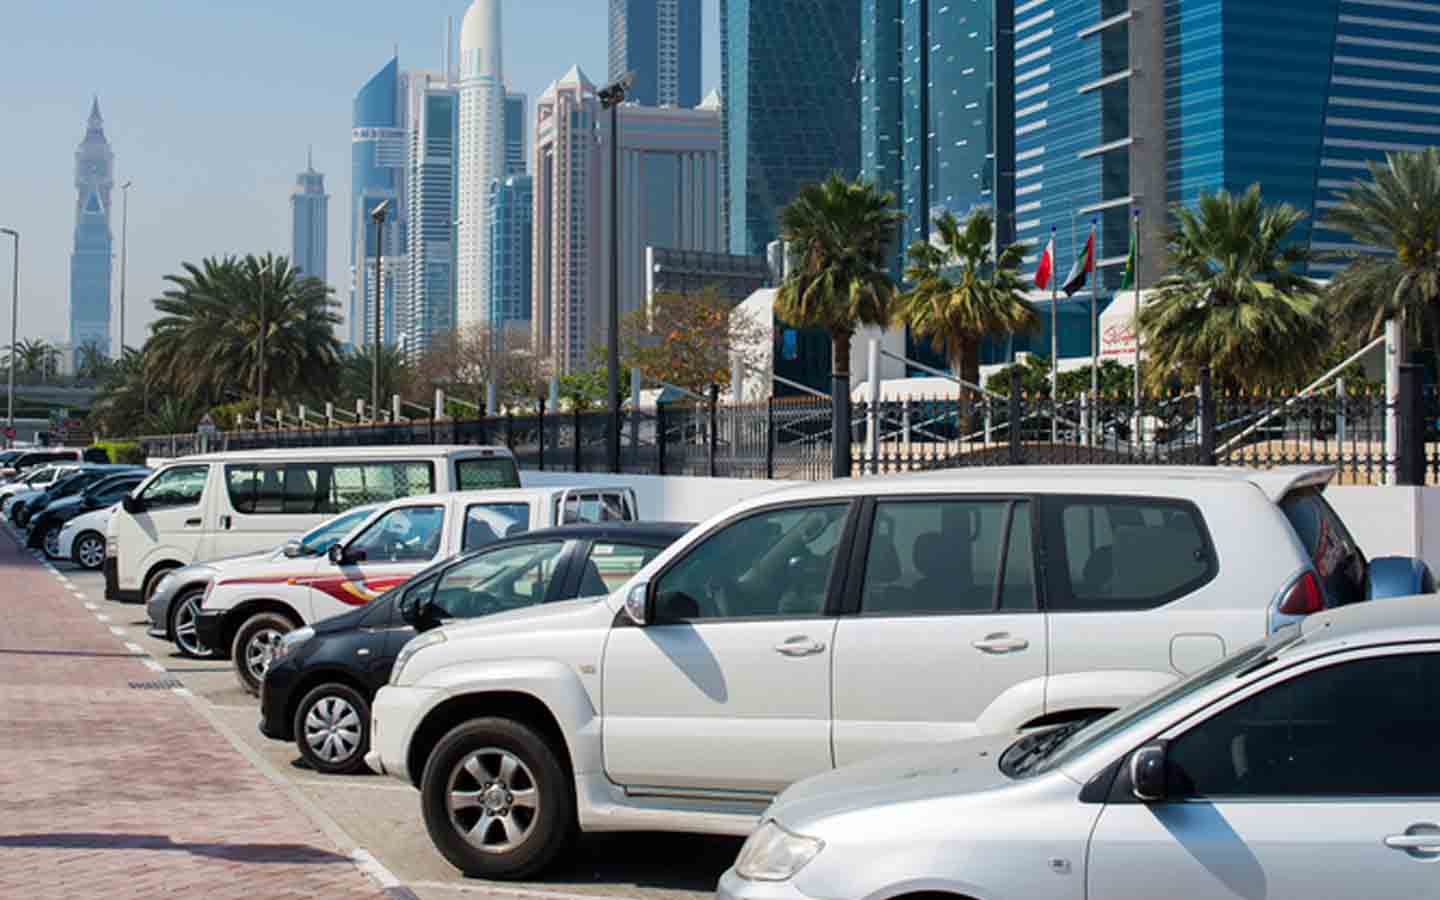 Guide To Rta Parking Charges In Dubai Parking Zones Seasonal Cards More Mybayut